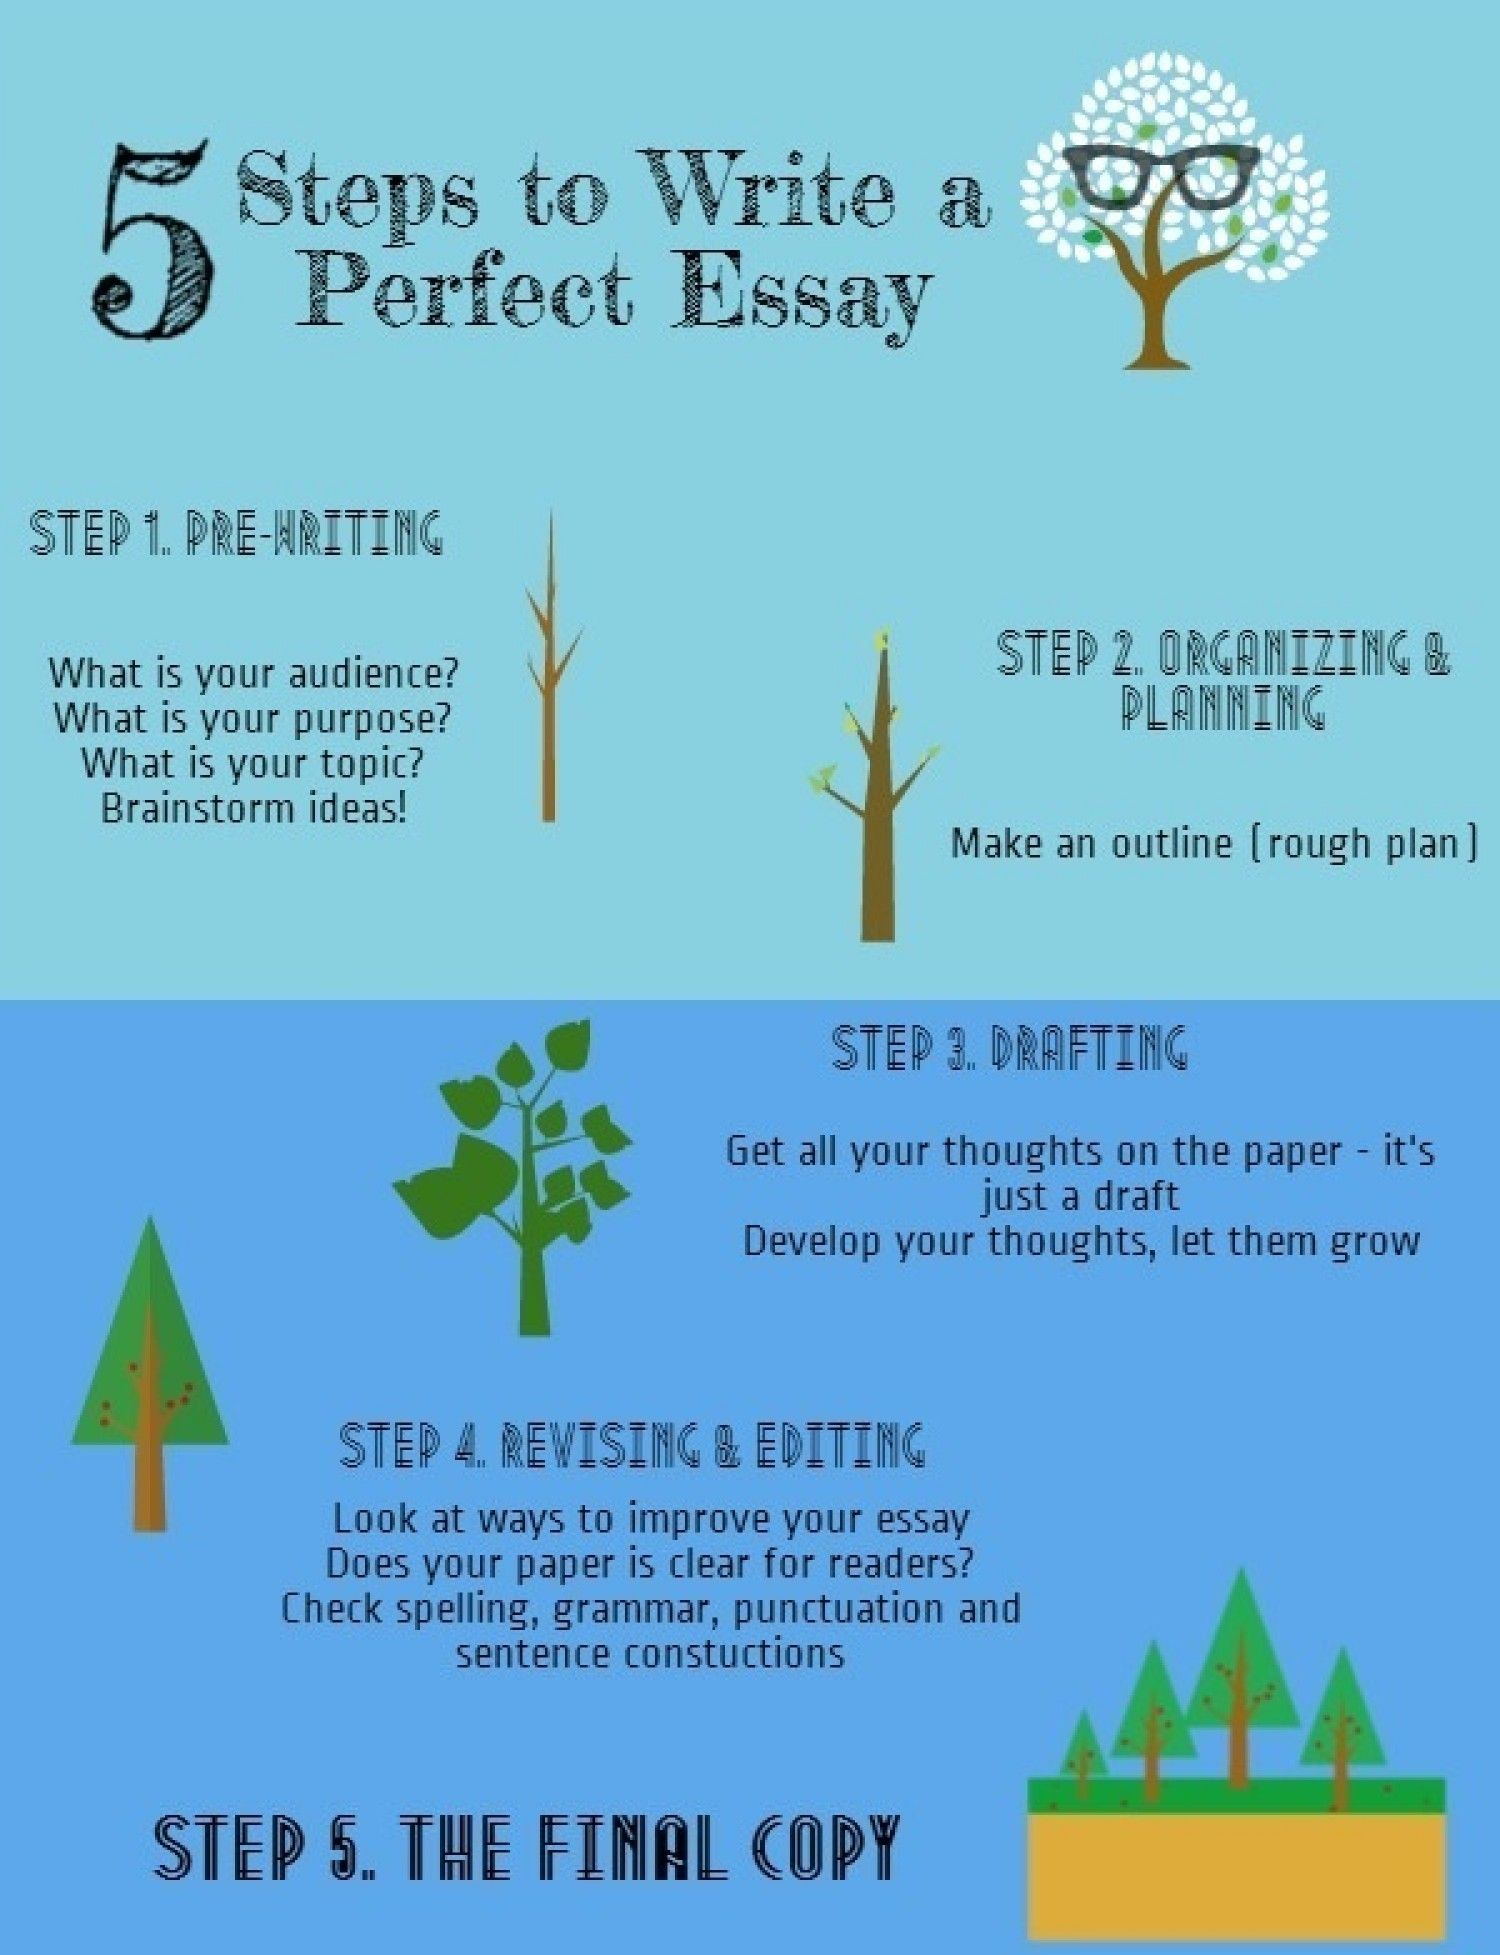 How to write a perfect essay